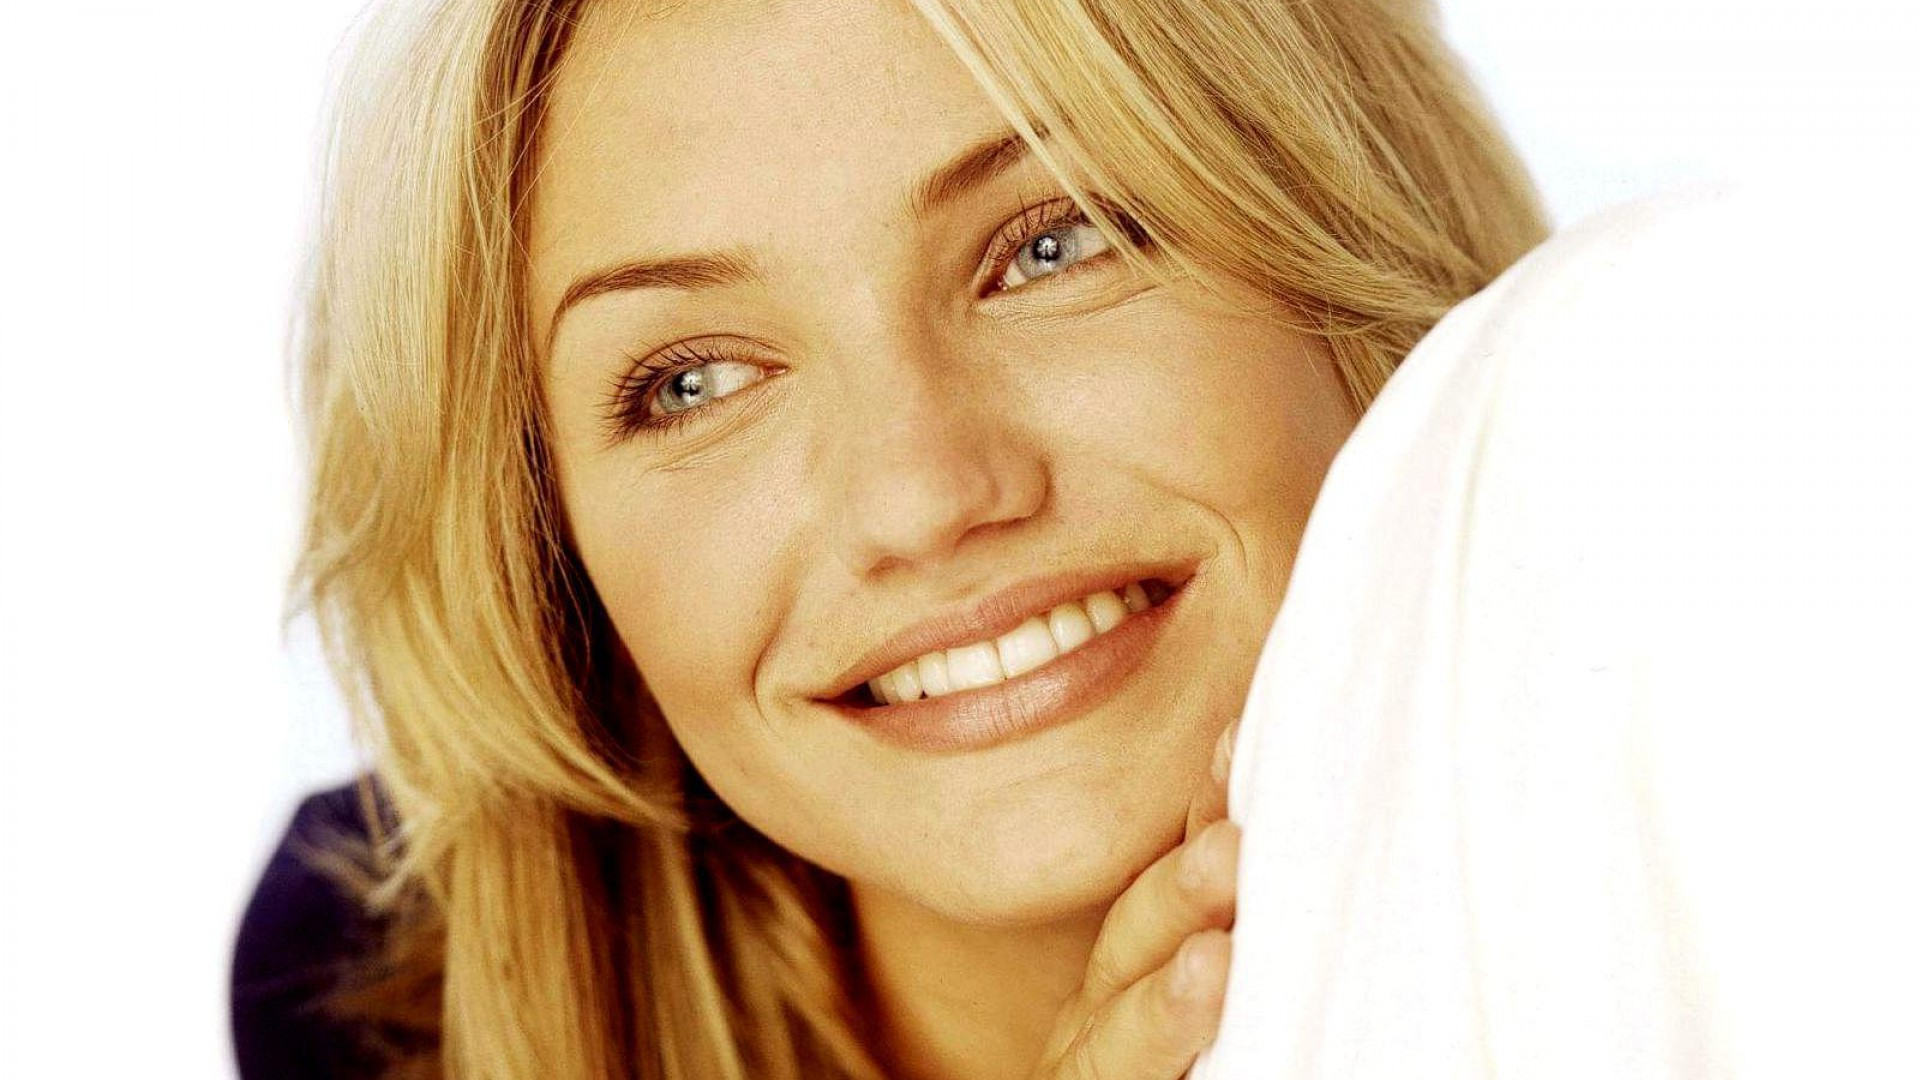 San Diego Iphone Wallpaper Cameron Diaz Wallpapers Pictures Images